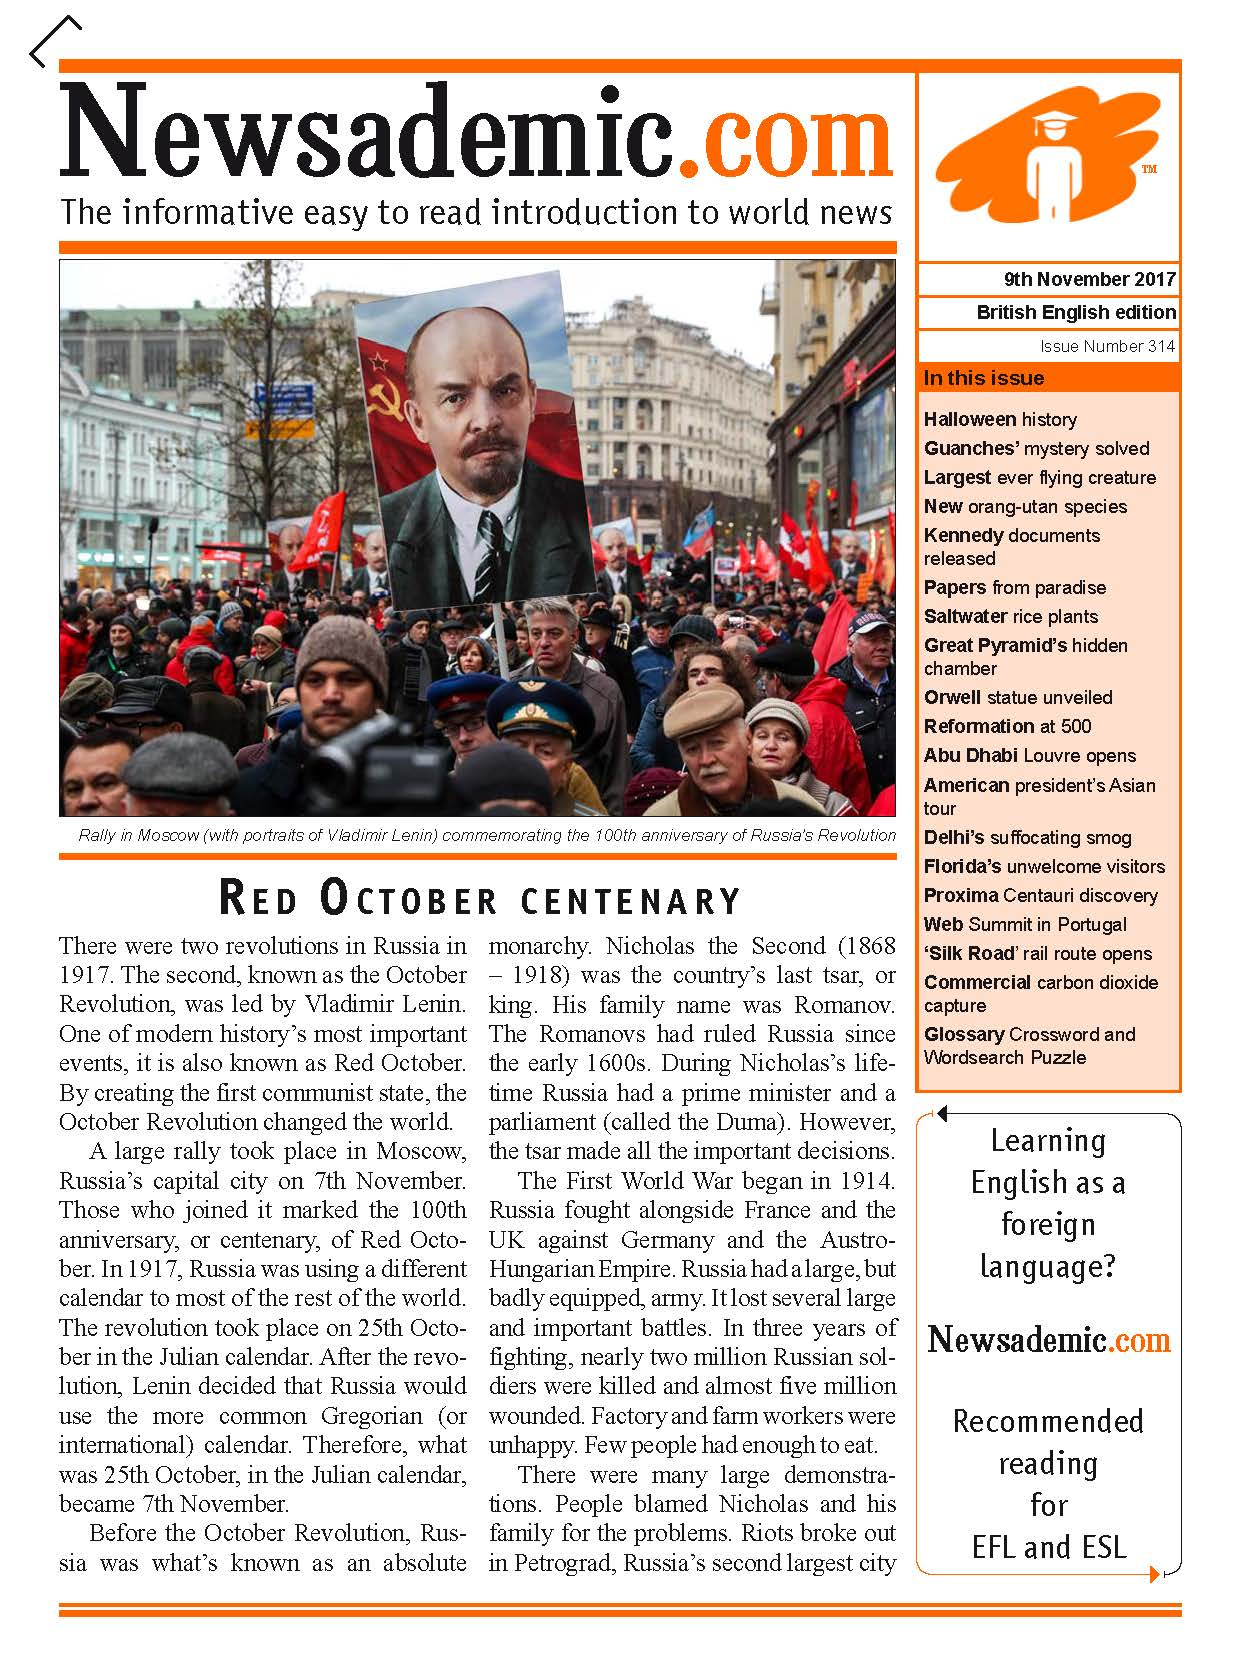 Newsademic Issue 314 Front Cover: Centenary of Russian Revolution